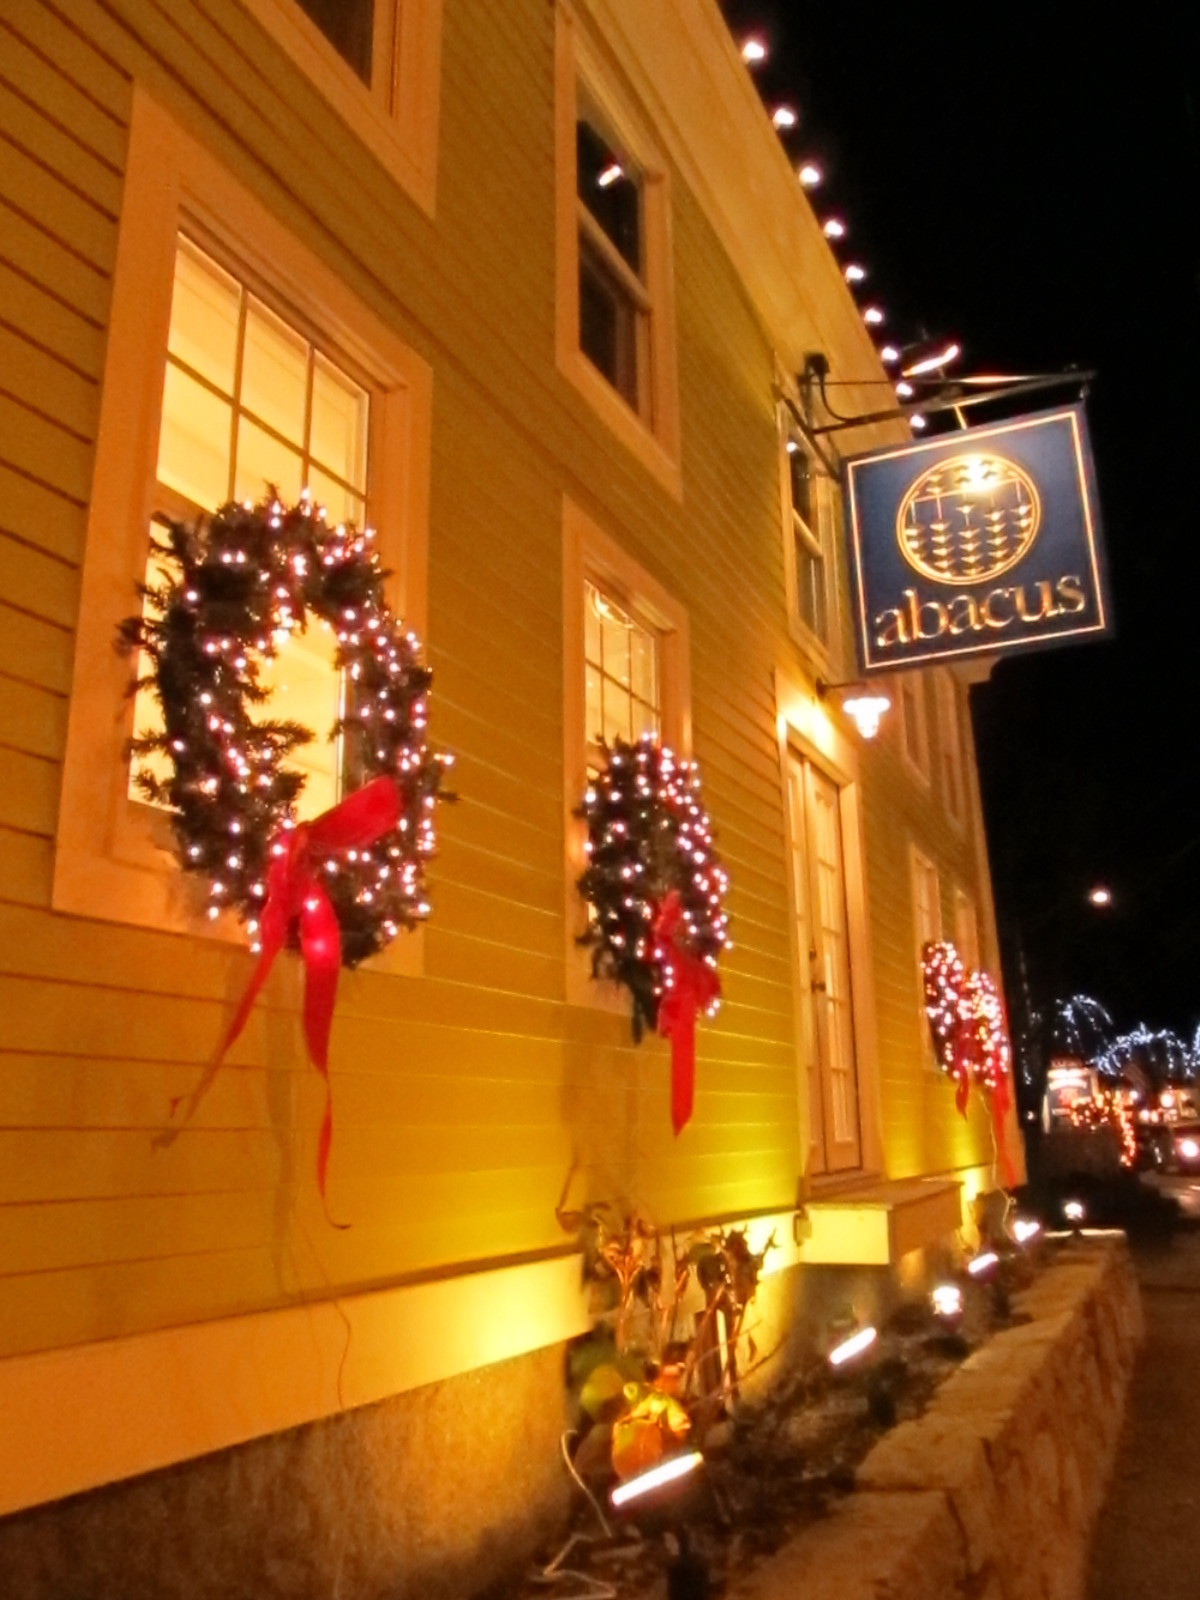 The Boston Foodie: Ogunquit: Christmas By The Sea